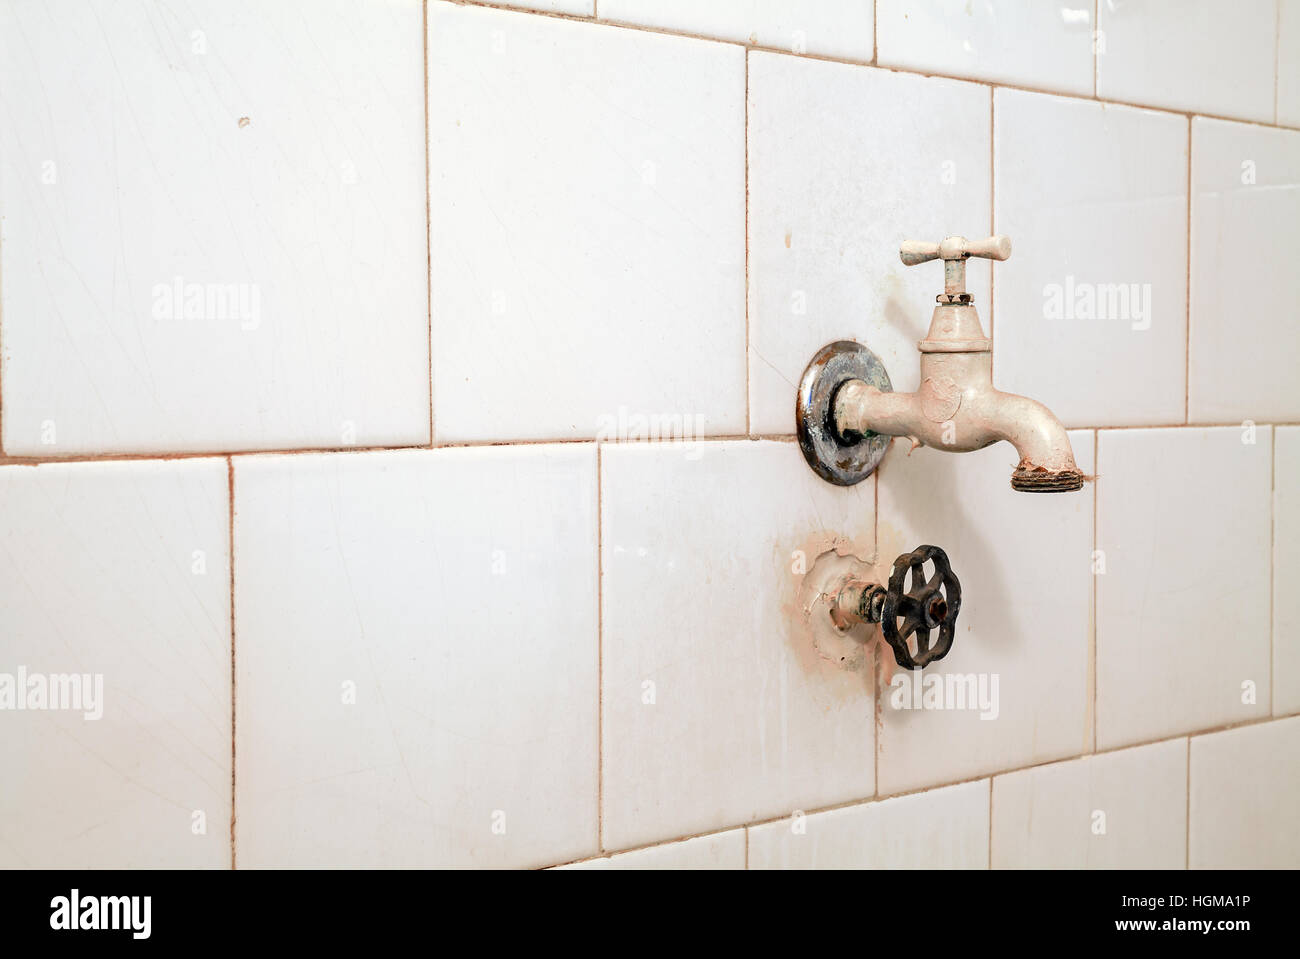 Tiles Bathroom Stock Photos & Tiles Bathroom Stock Images - Alamy